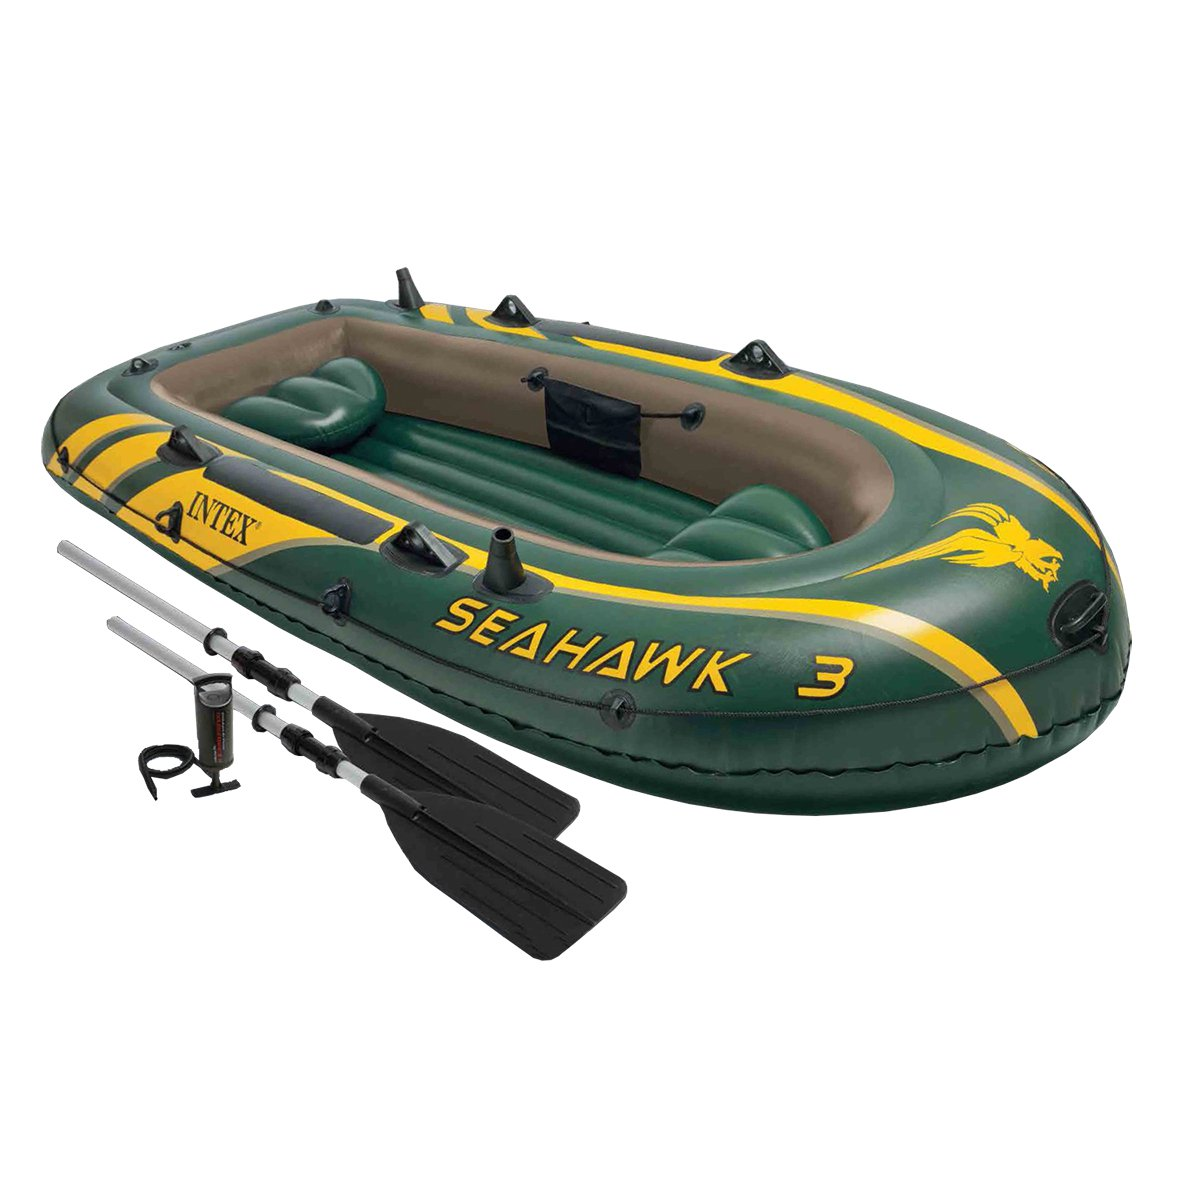 Intex Seahawk 3 Person Inflatable Boat Set with Aluminum Oars & Pump | 68380EP by Intex